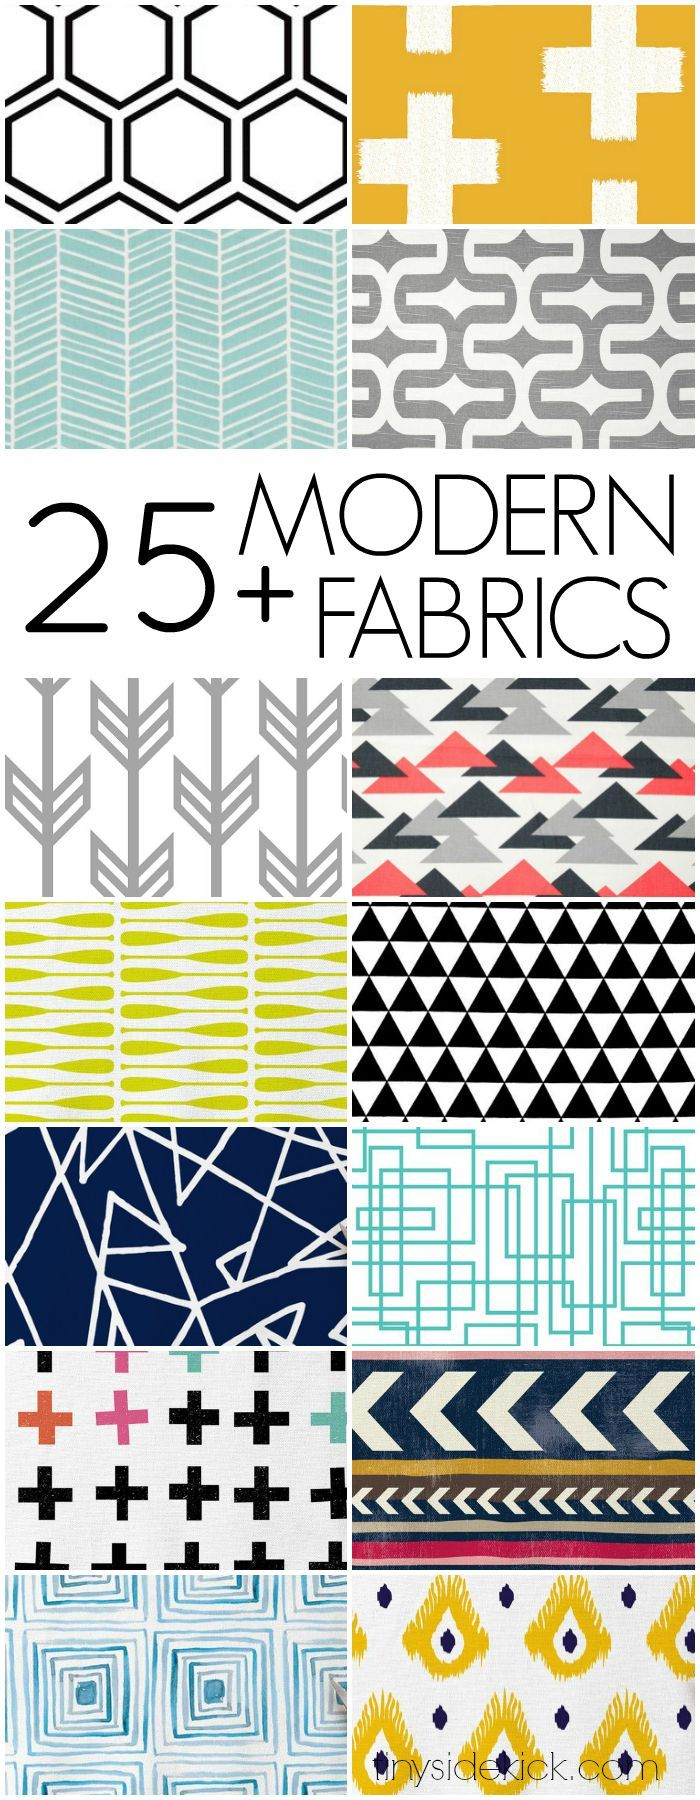 Best 25 Modern fabric ideas on Pinterest Fabric Mid century